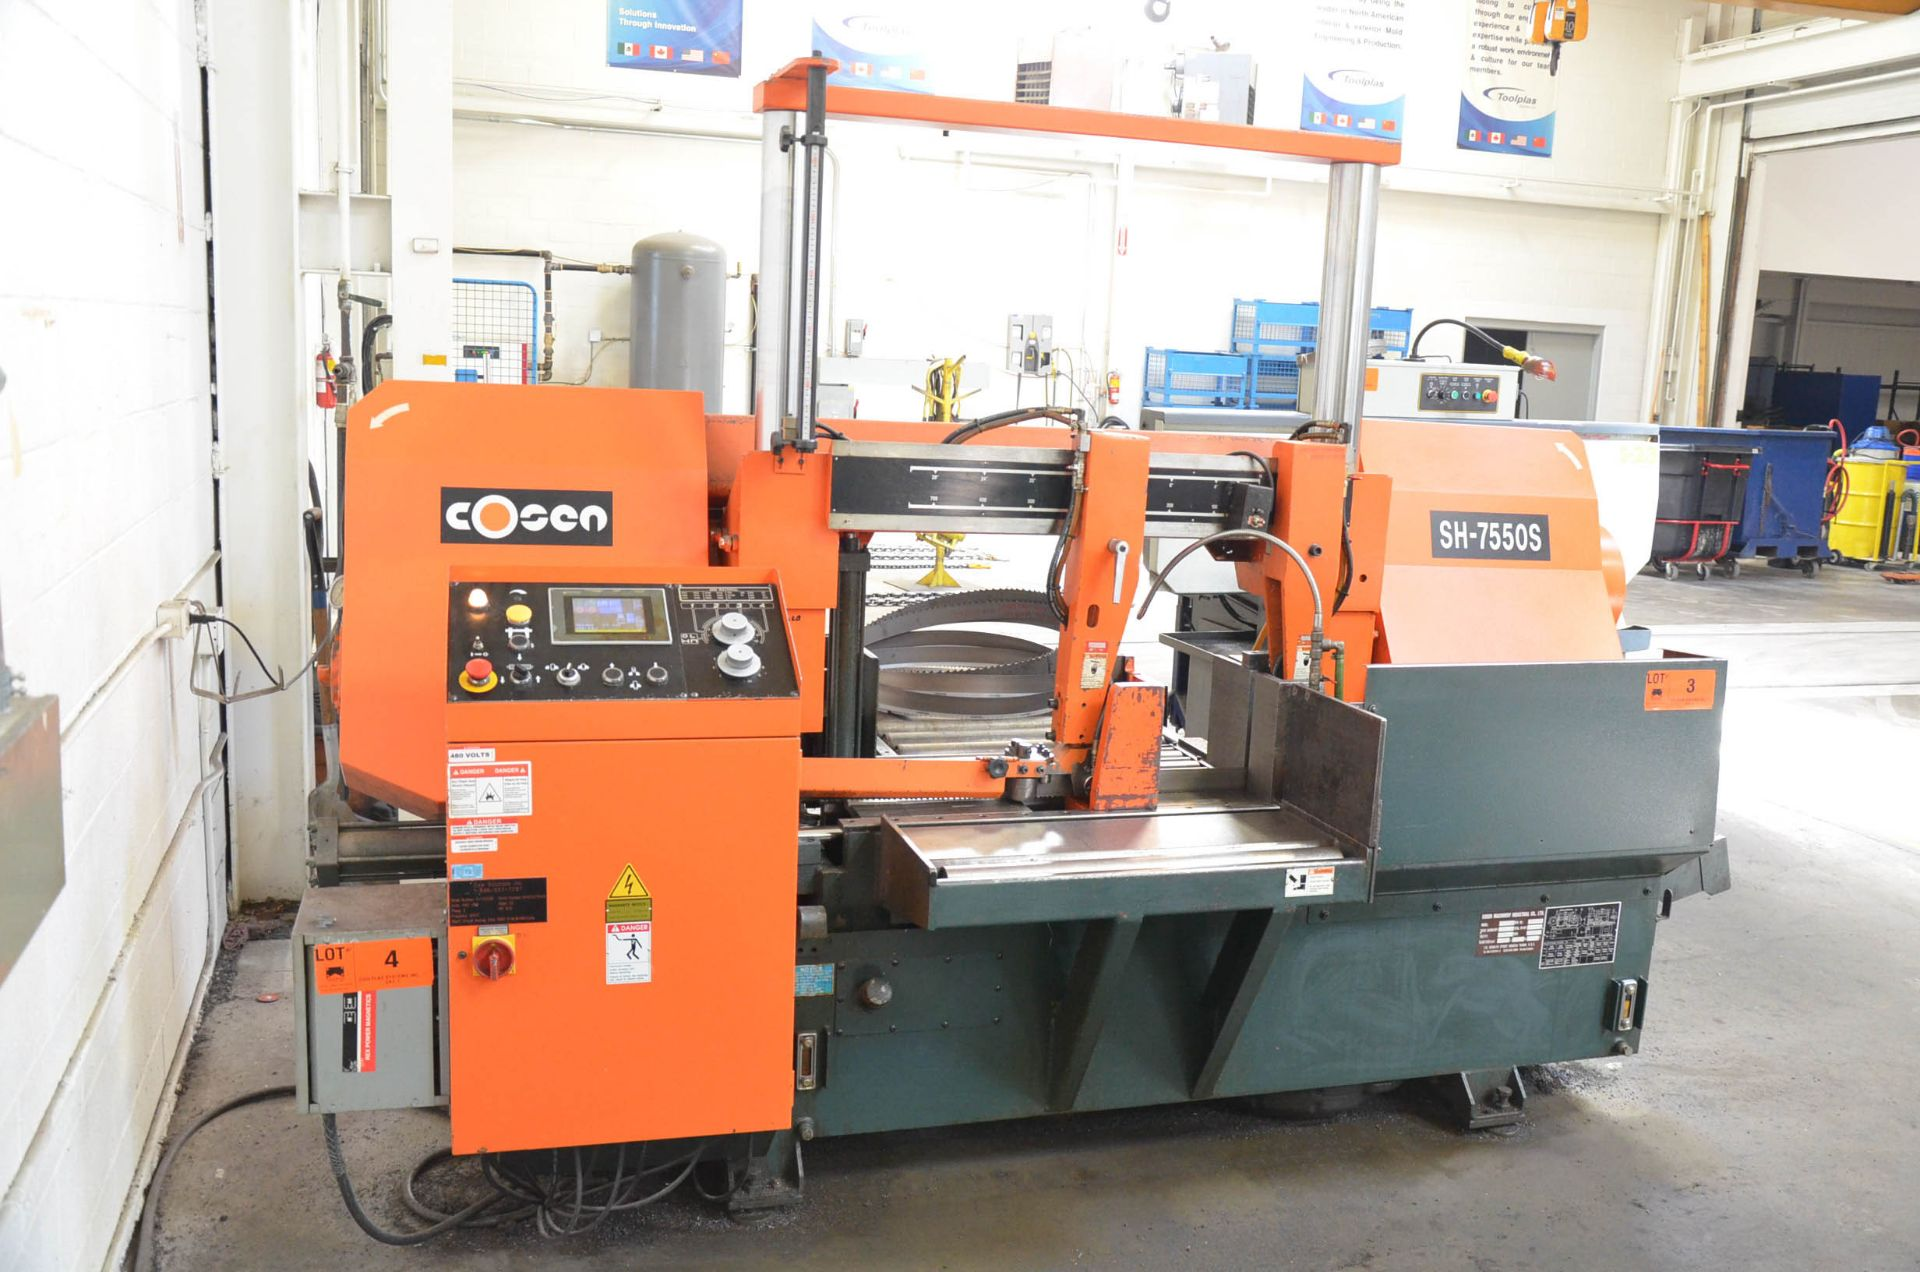 """COSEN (2012) SH-7550S AUTOMATIC DOUBLE COLUMN HORIZONTAL BAND SAW WITH 28"""" CAPACITY, HITECH TOUCH - Image 3 of 7"""